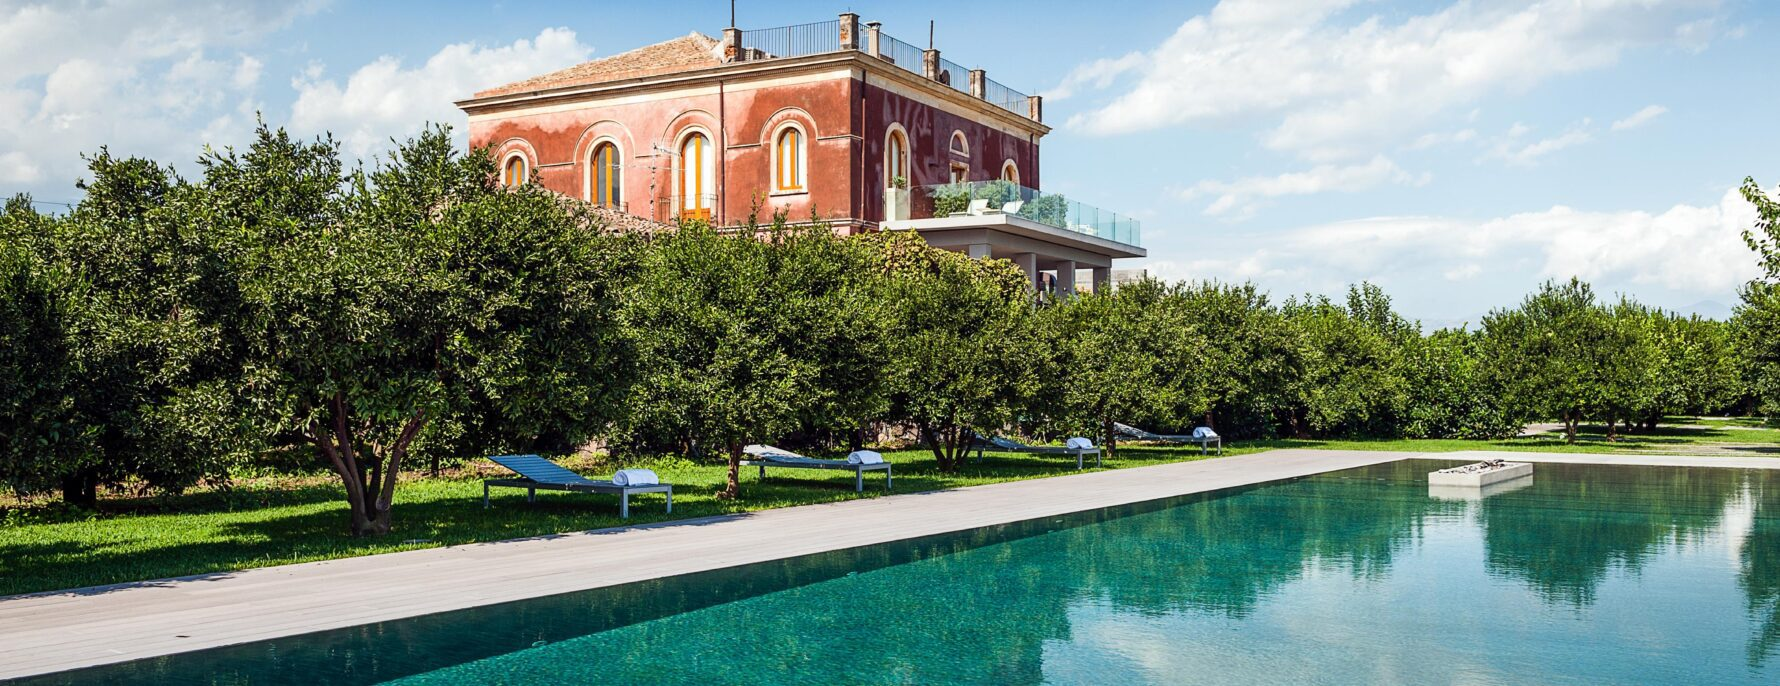 Country Boutique Hotel in Sicily